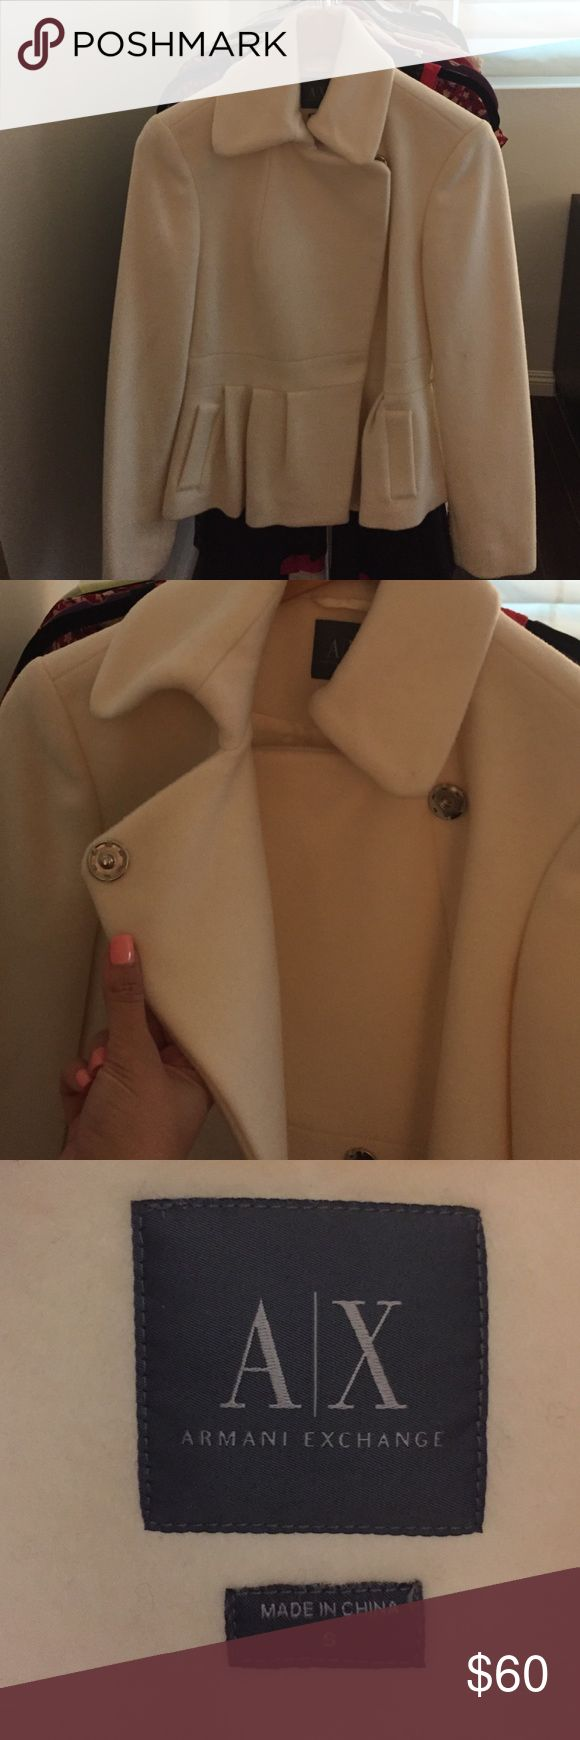 Winter white coat Winter white coat, by Armani Exchange - stylish and comfortable , sits right above hip line. Armani Exchange Jackets & Coats Pea Coats